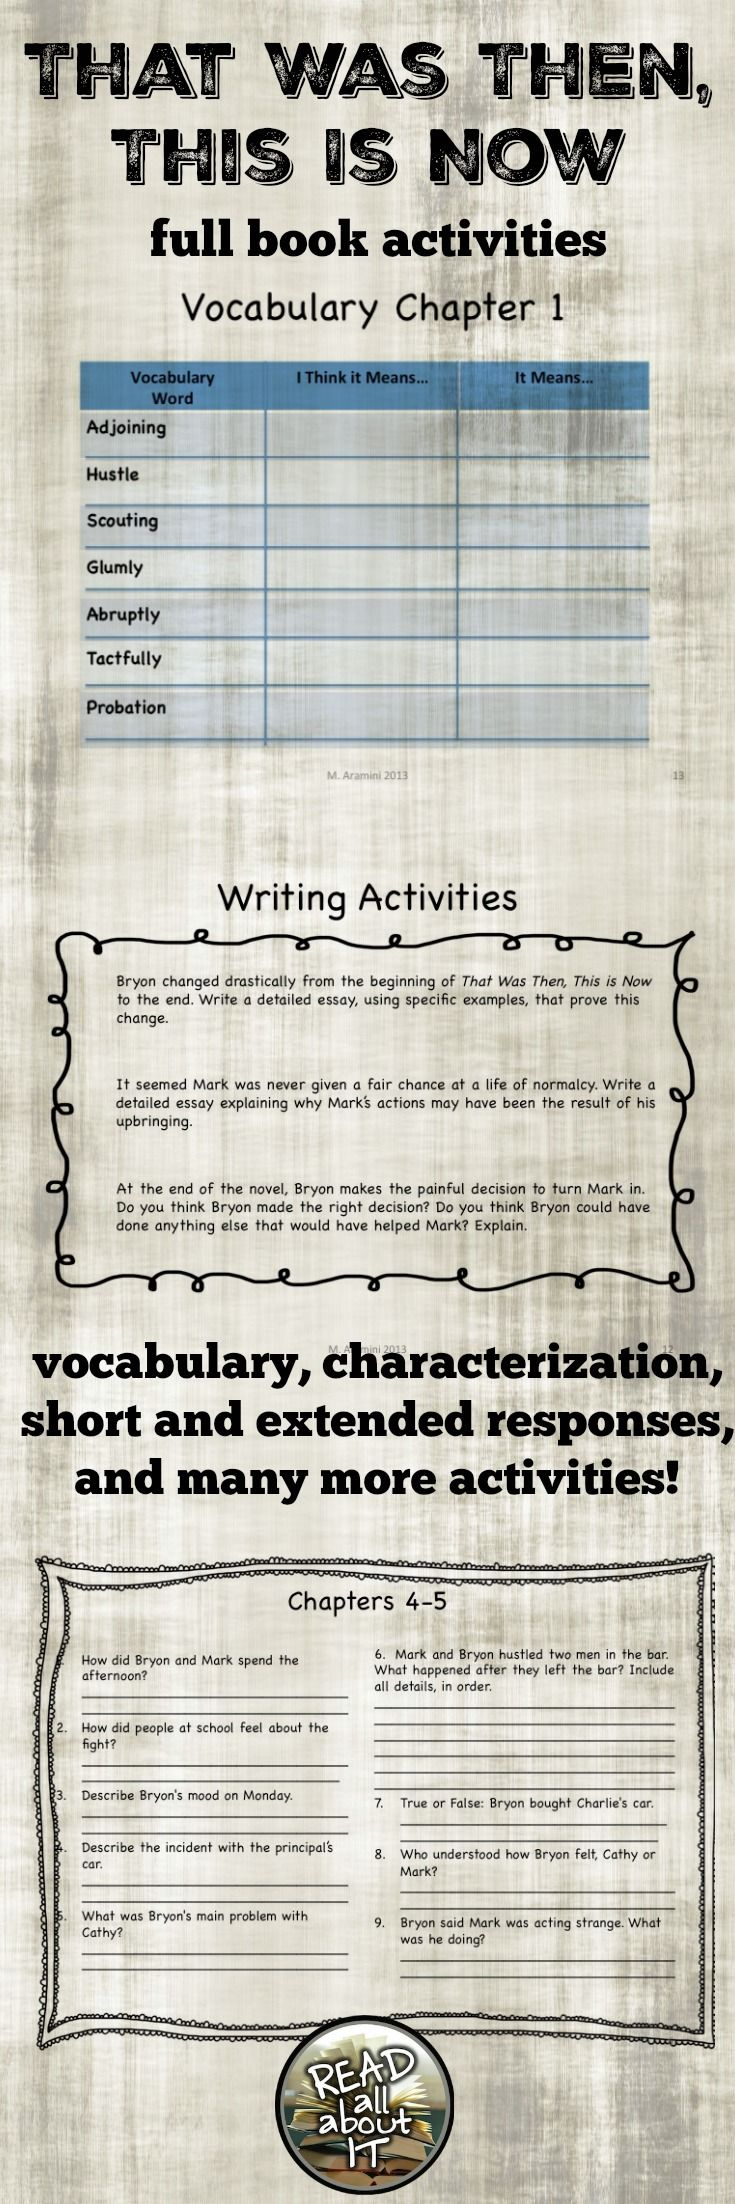 1000 images about k 12 book activities making this is a 17 page packet filled discussion questions for each chapter vocabulary words and definitions for each chapter test questions and writing